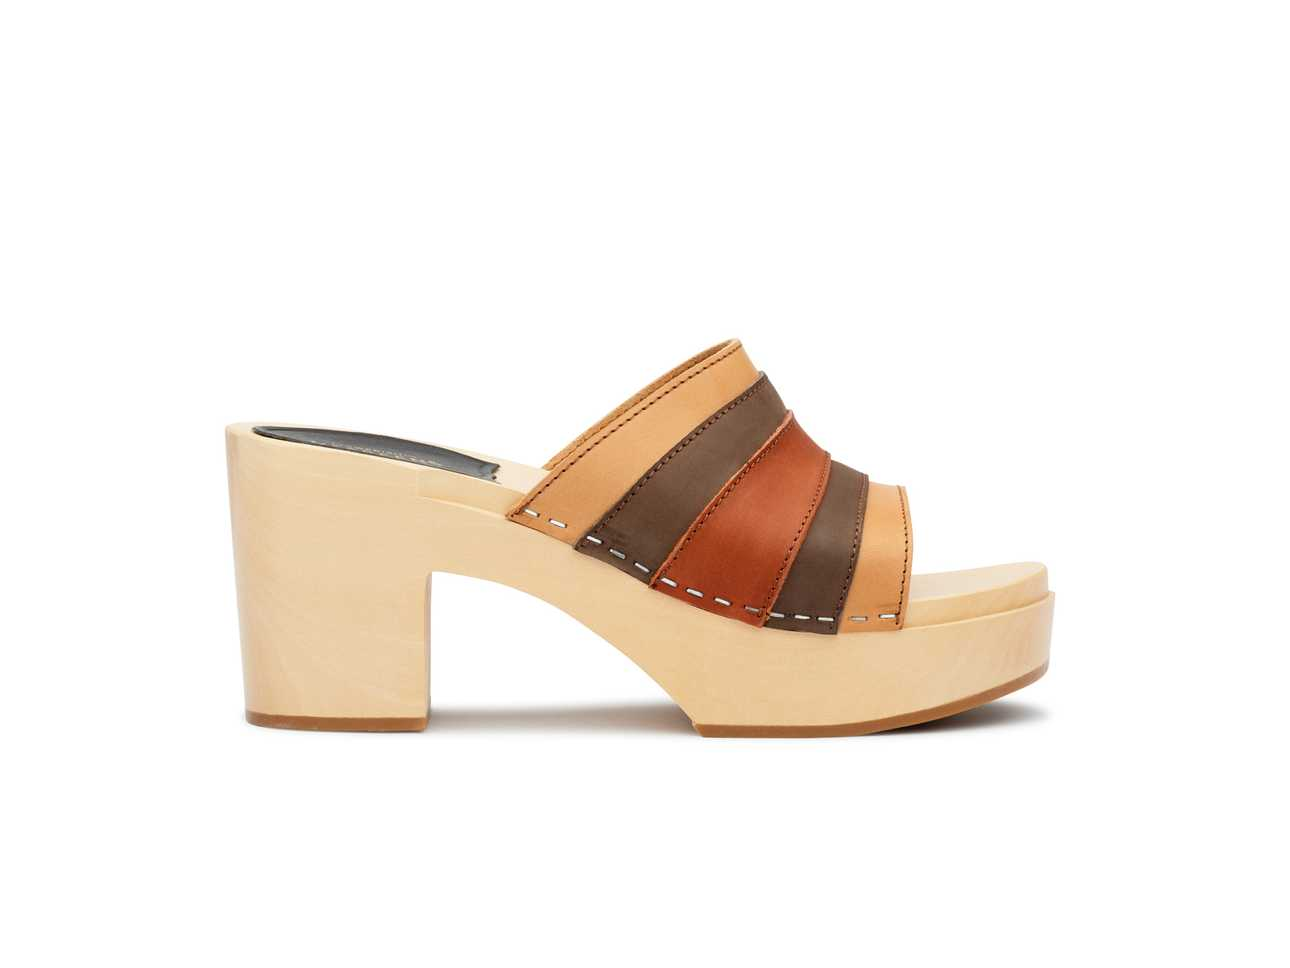 Anki Brown Nubuck color combo